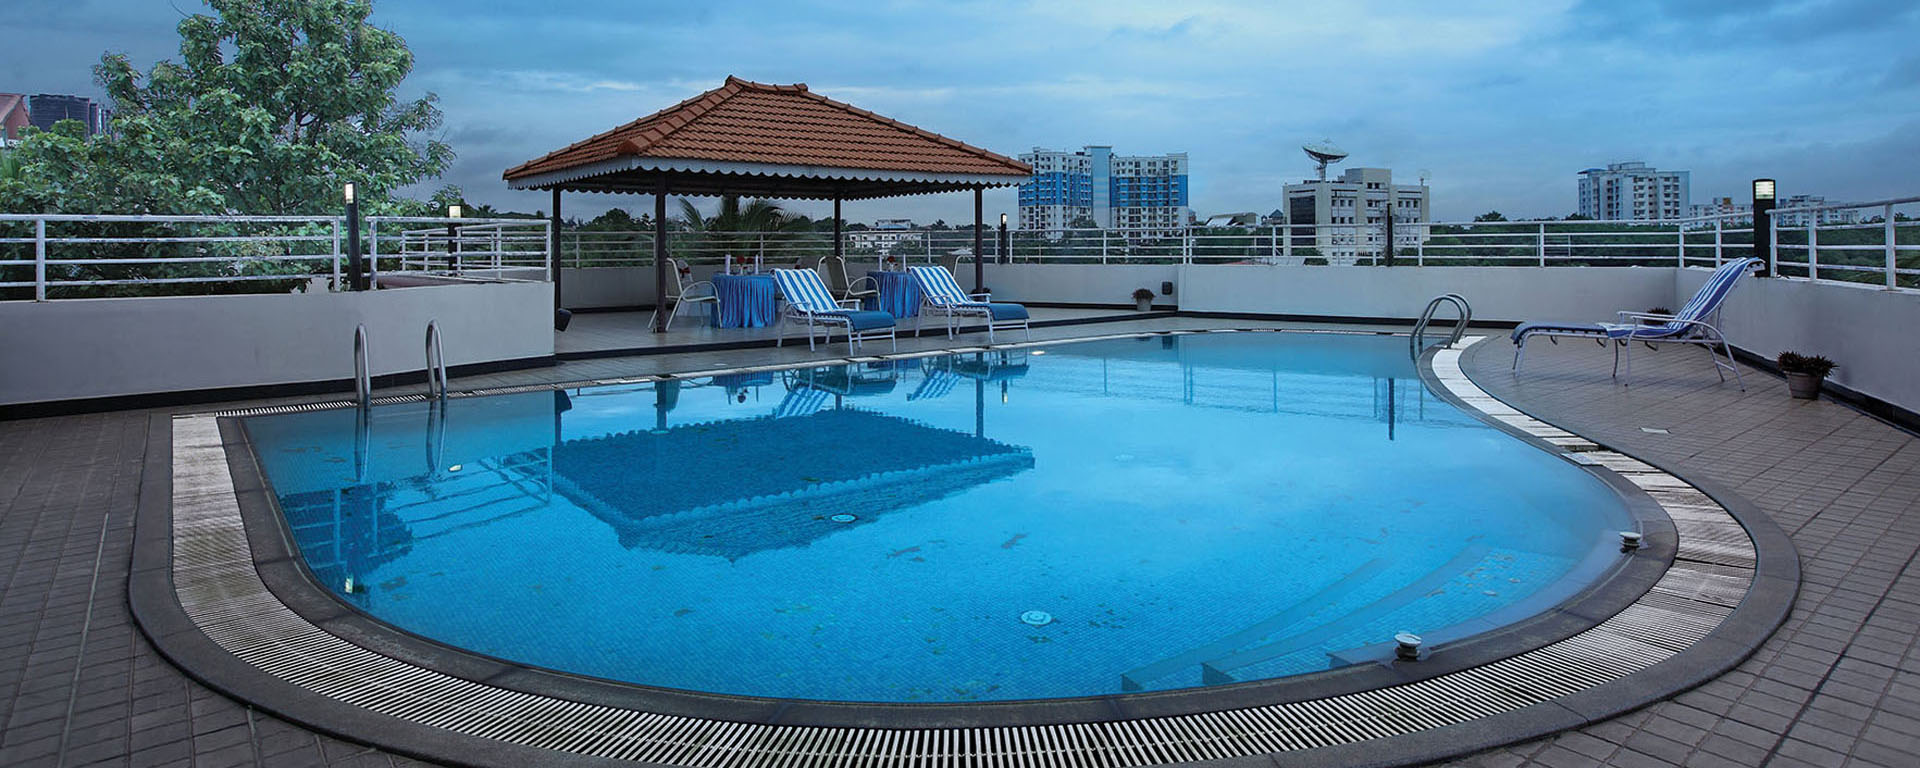 Swimming Pool at Park Residency